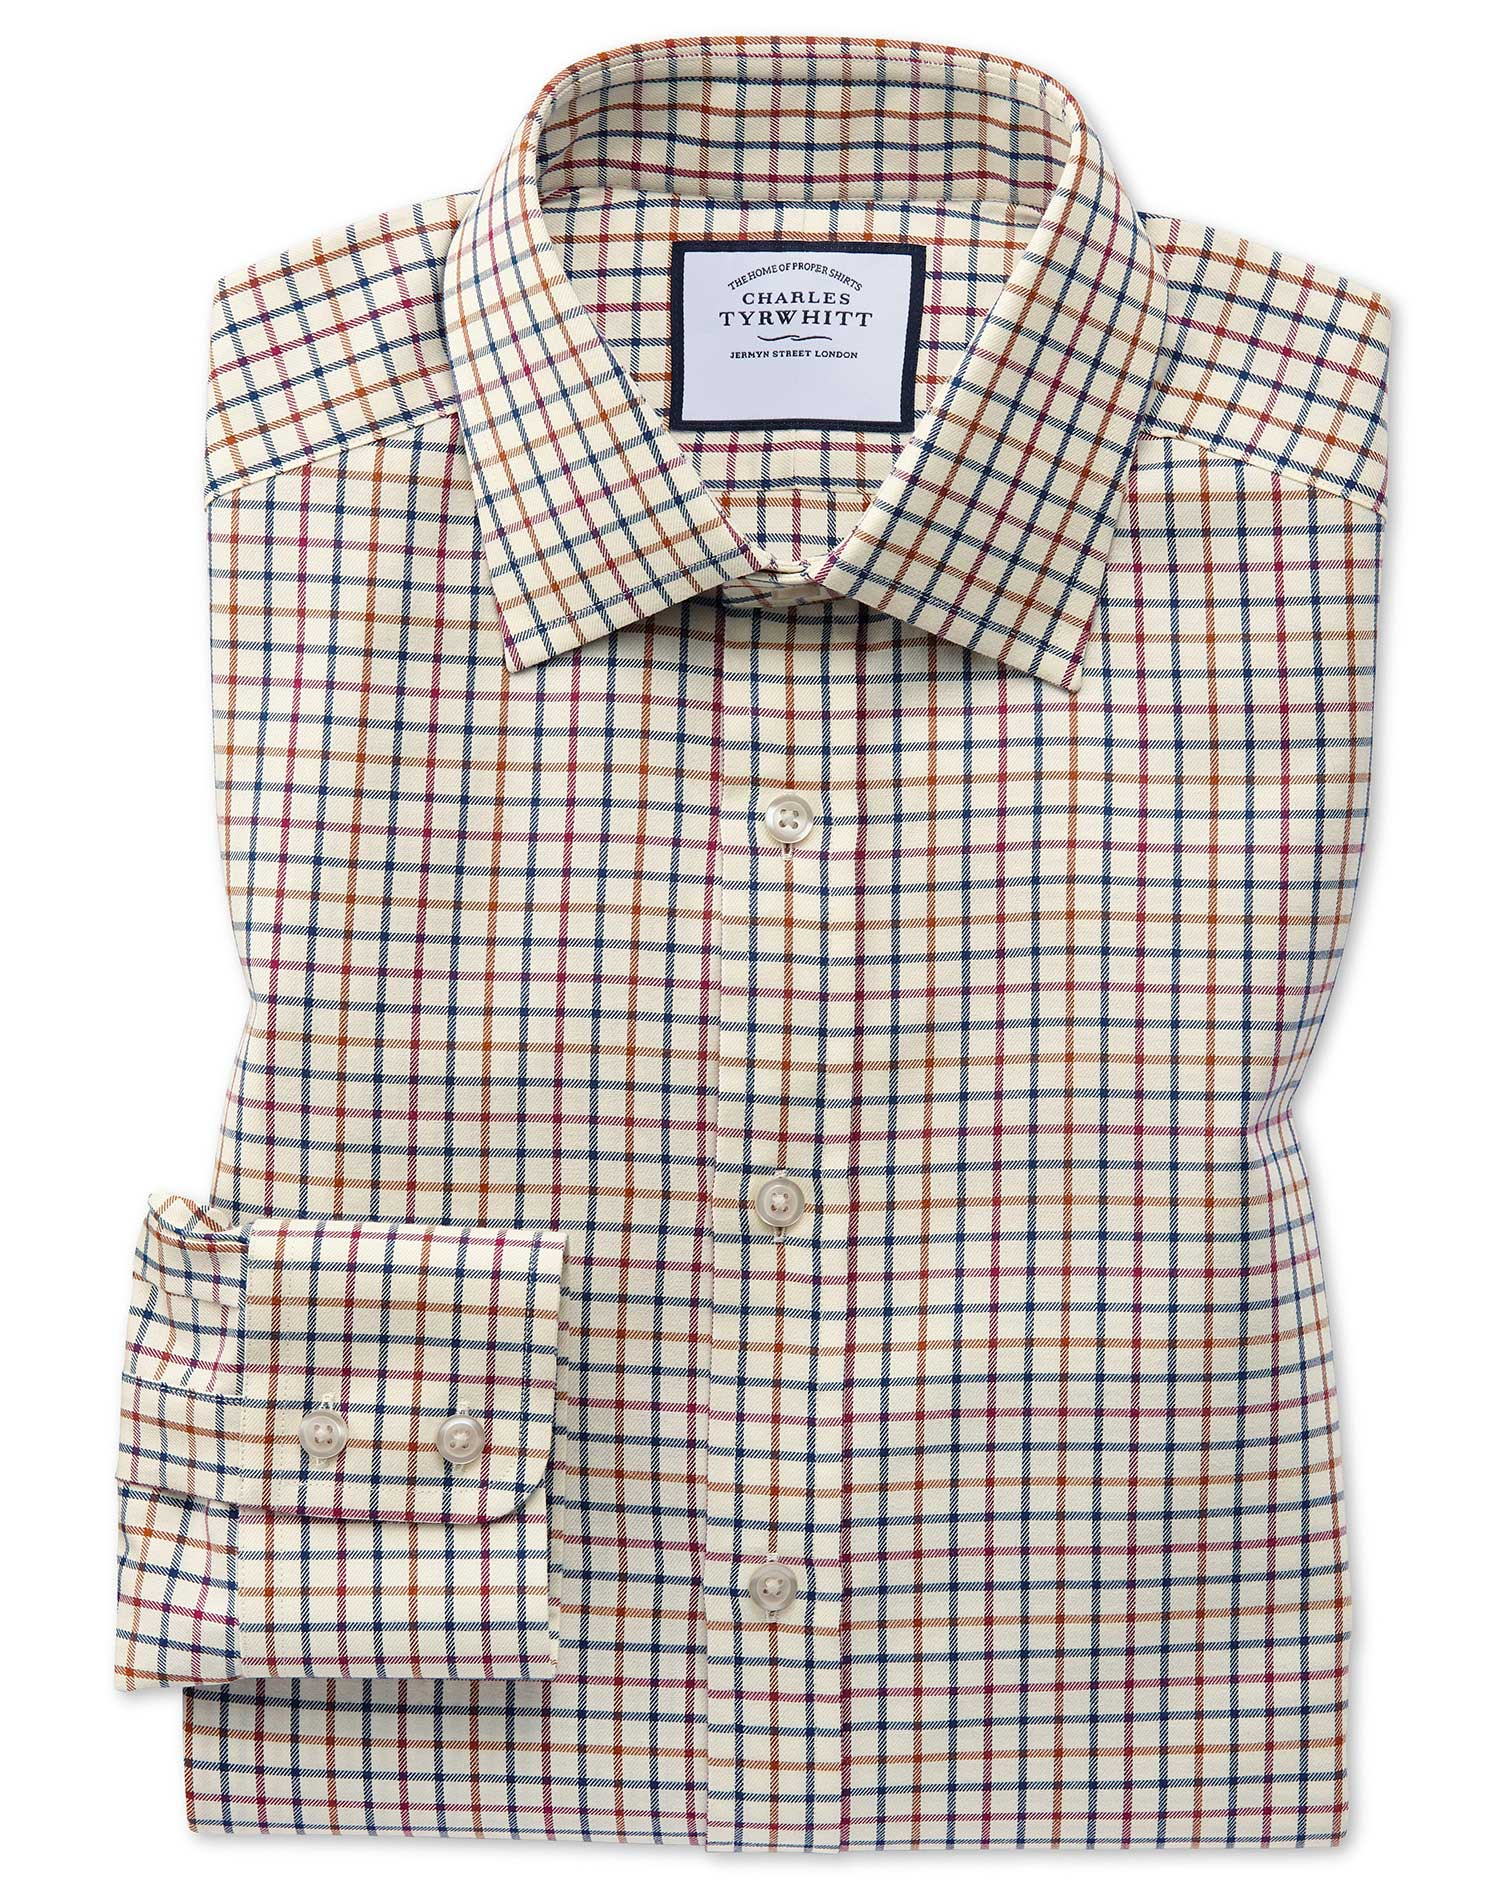 Slim Fit Navy and Berry Country Check Cotton Formal Shirt Single Cuff Size 17.5/36 by Charles Tyrwhi